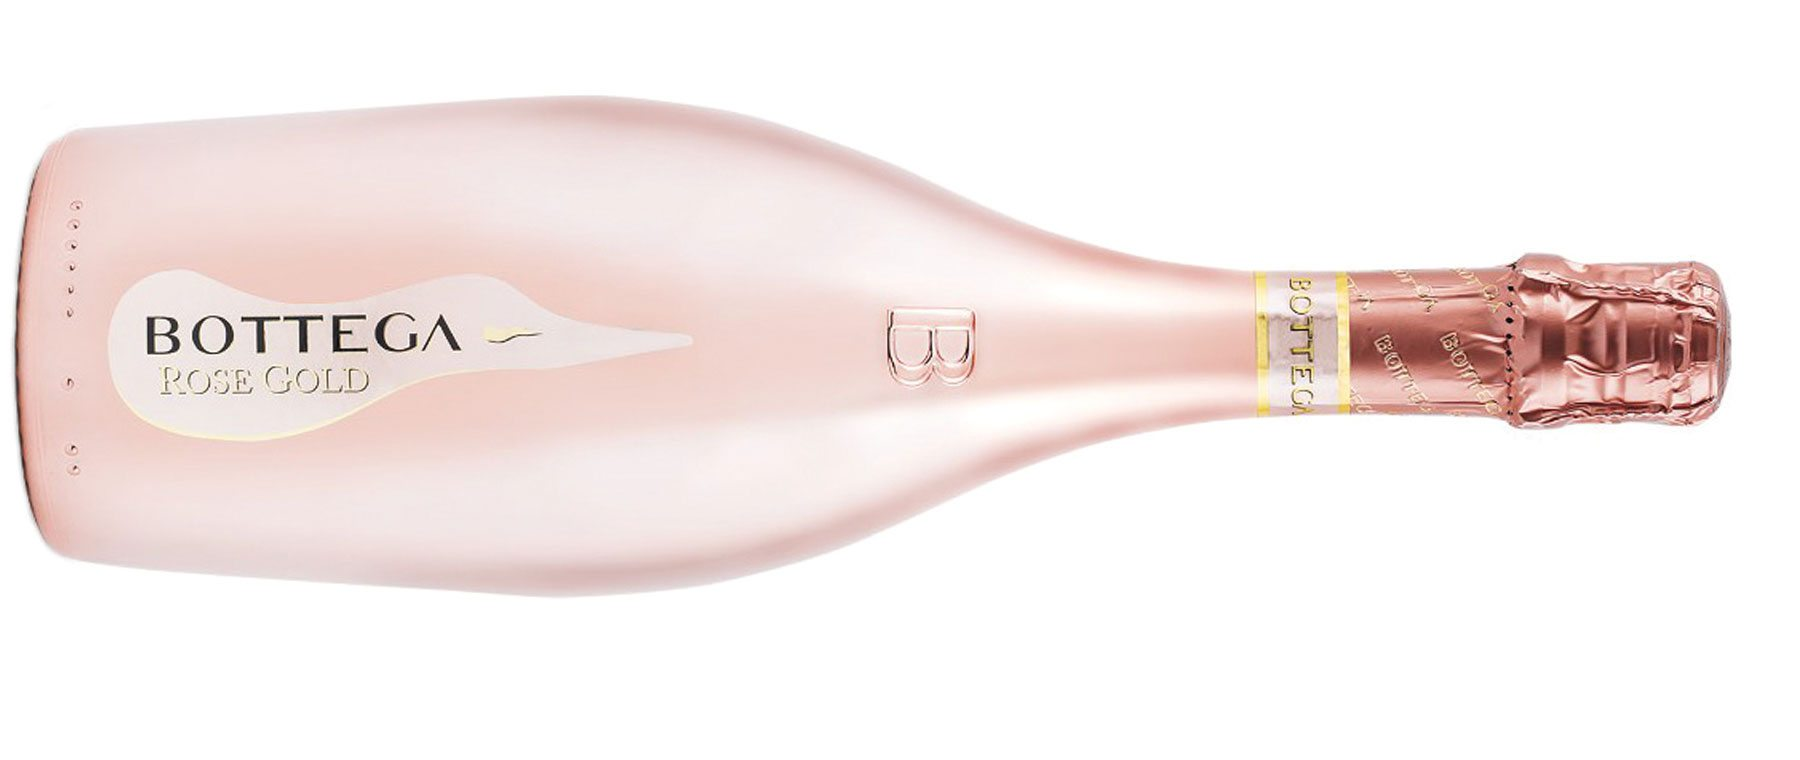 All about the bubbly this Mother's Day